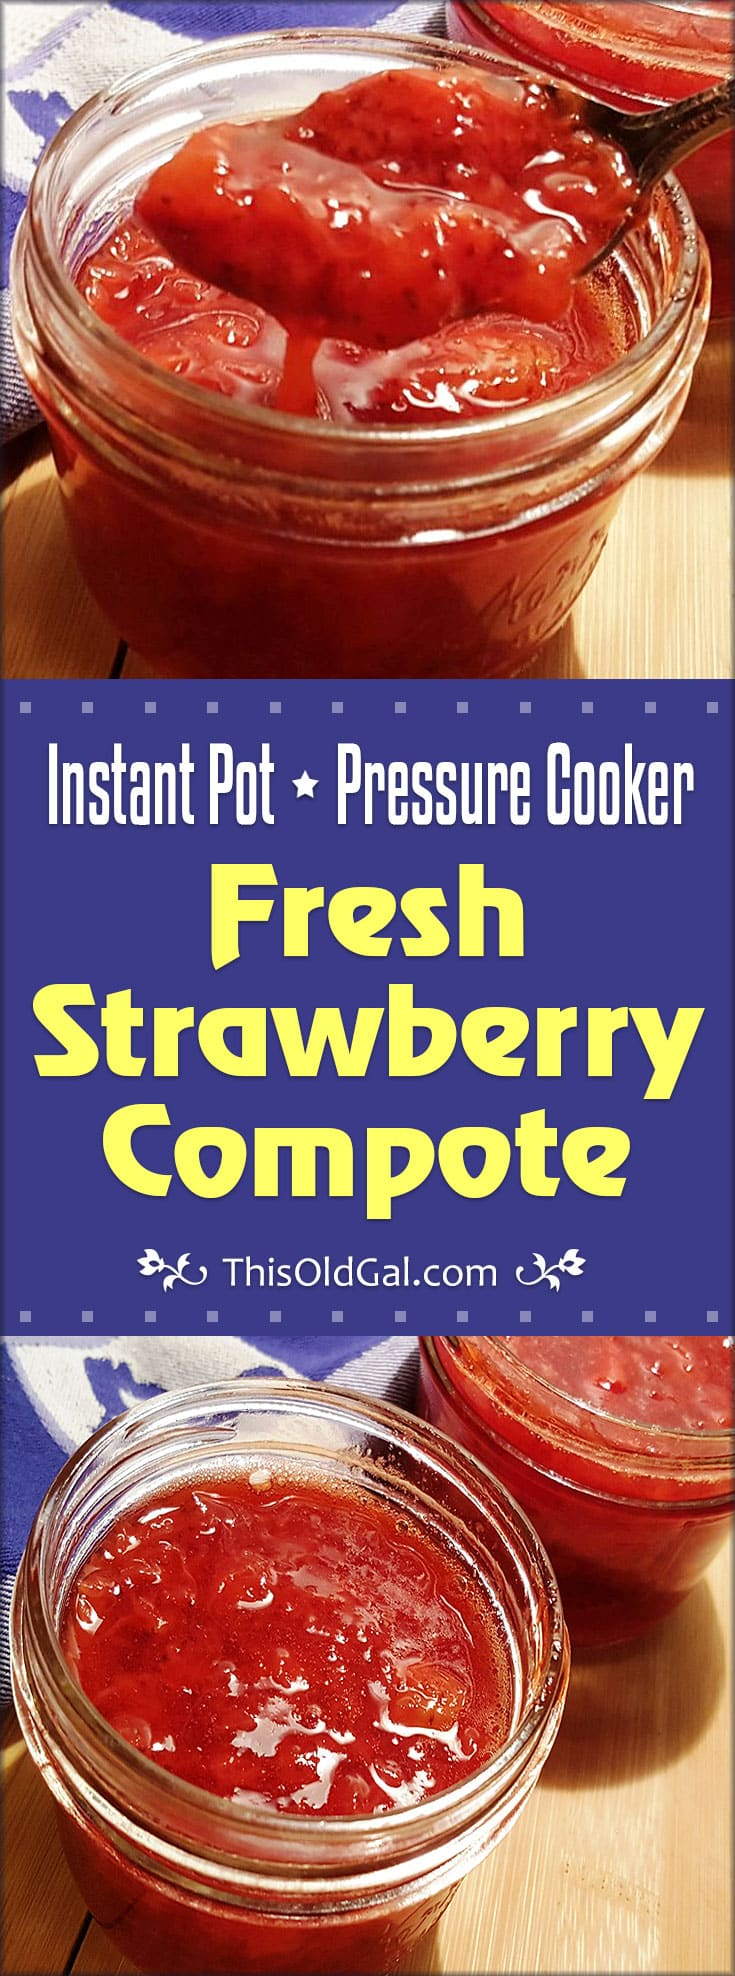 Pressure Cooker Fresh Strawberry Compote (Instant Pot)